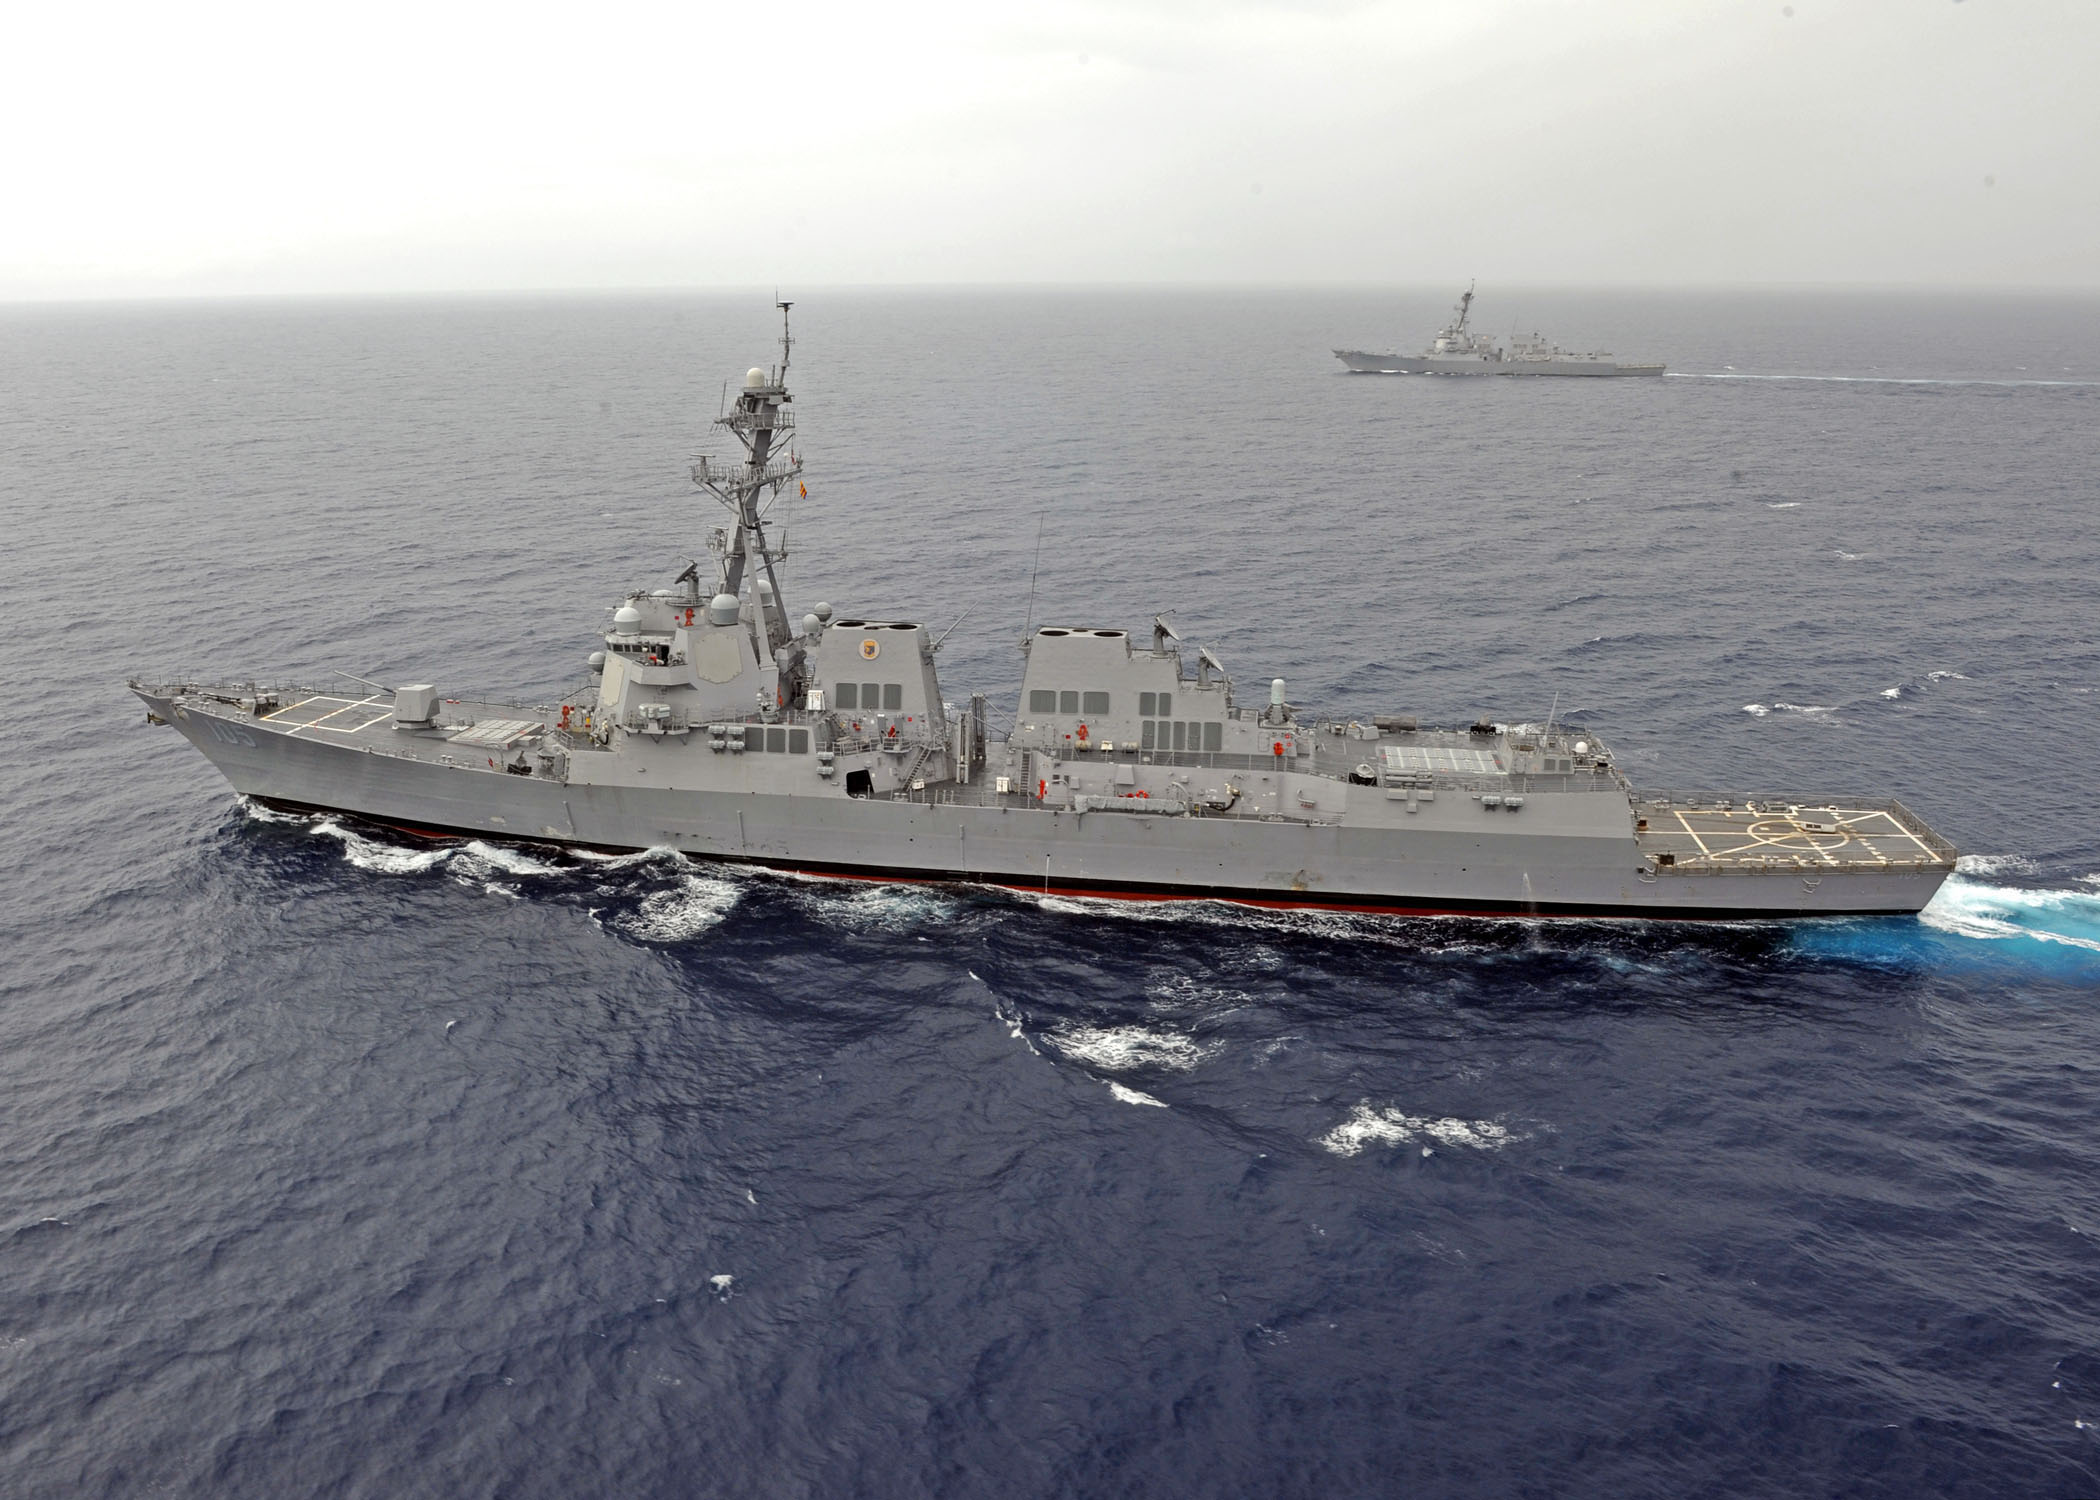 armée americaine US_Navy_111005-N-VH839-236_SOUTH_CHINA_SEA_%28Oct._5%2C_2011%29_The_guided-missile_destroyers_USS_Dewey_%28DDG_105%29%2C_front%2C_and_USS_Pinckney_%28DDG_91%29